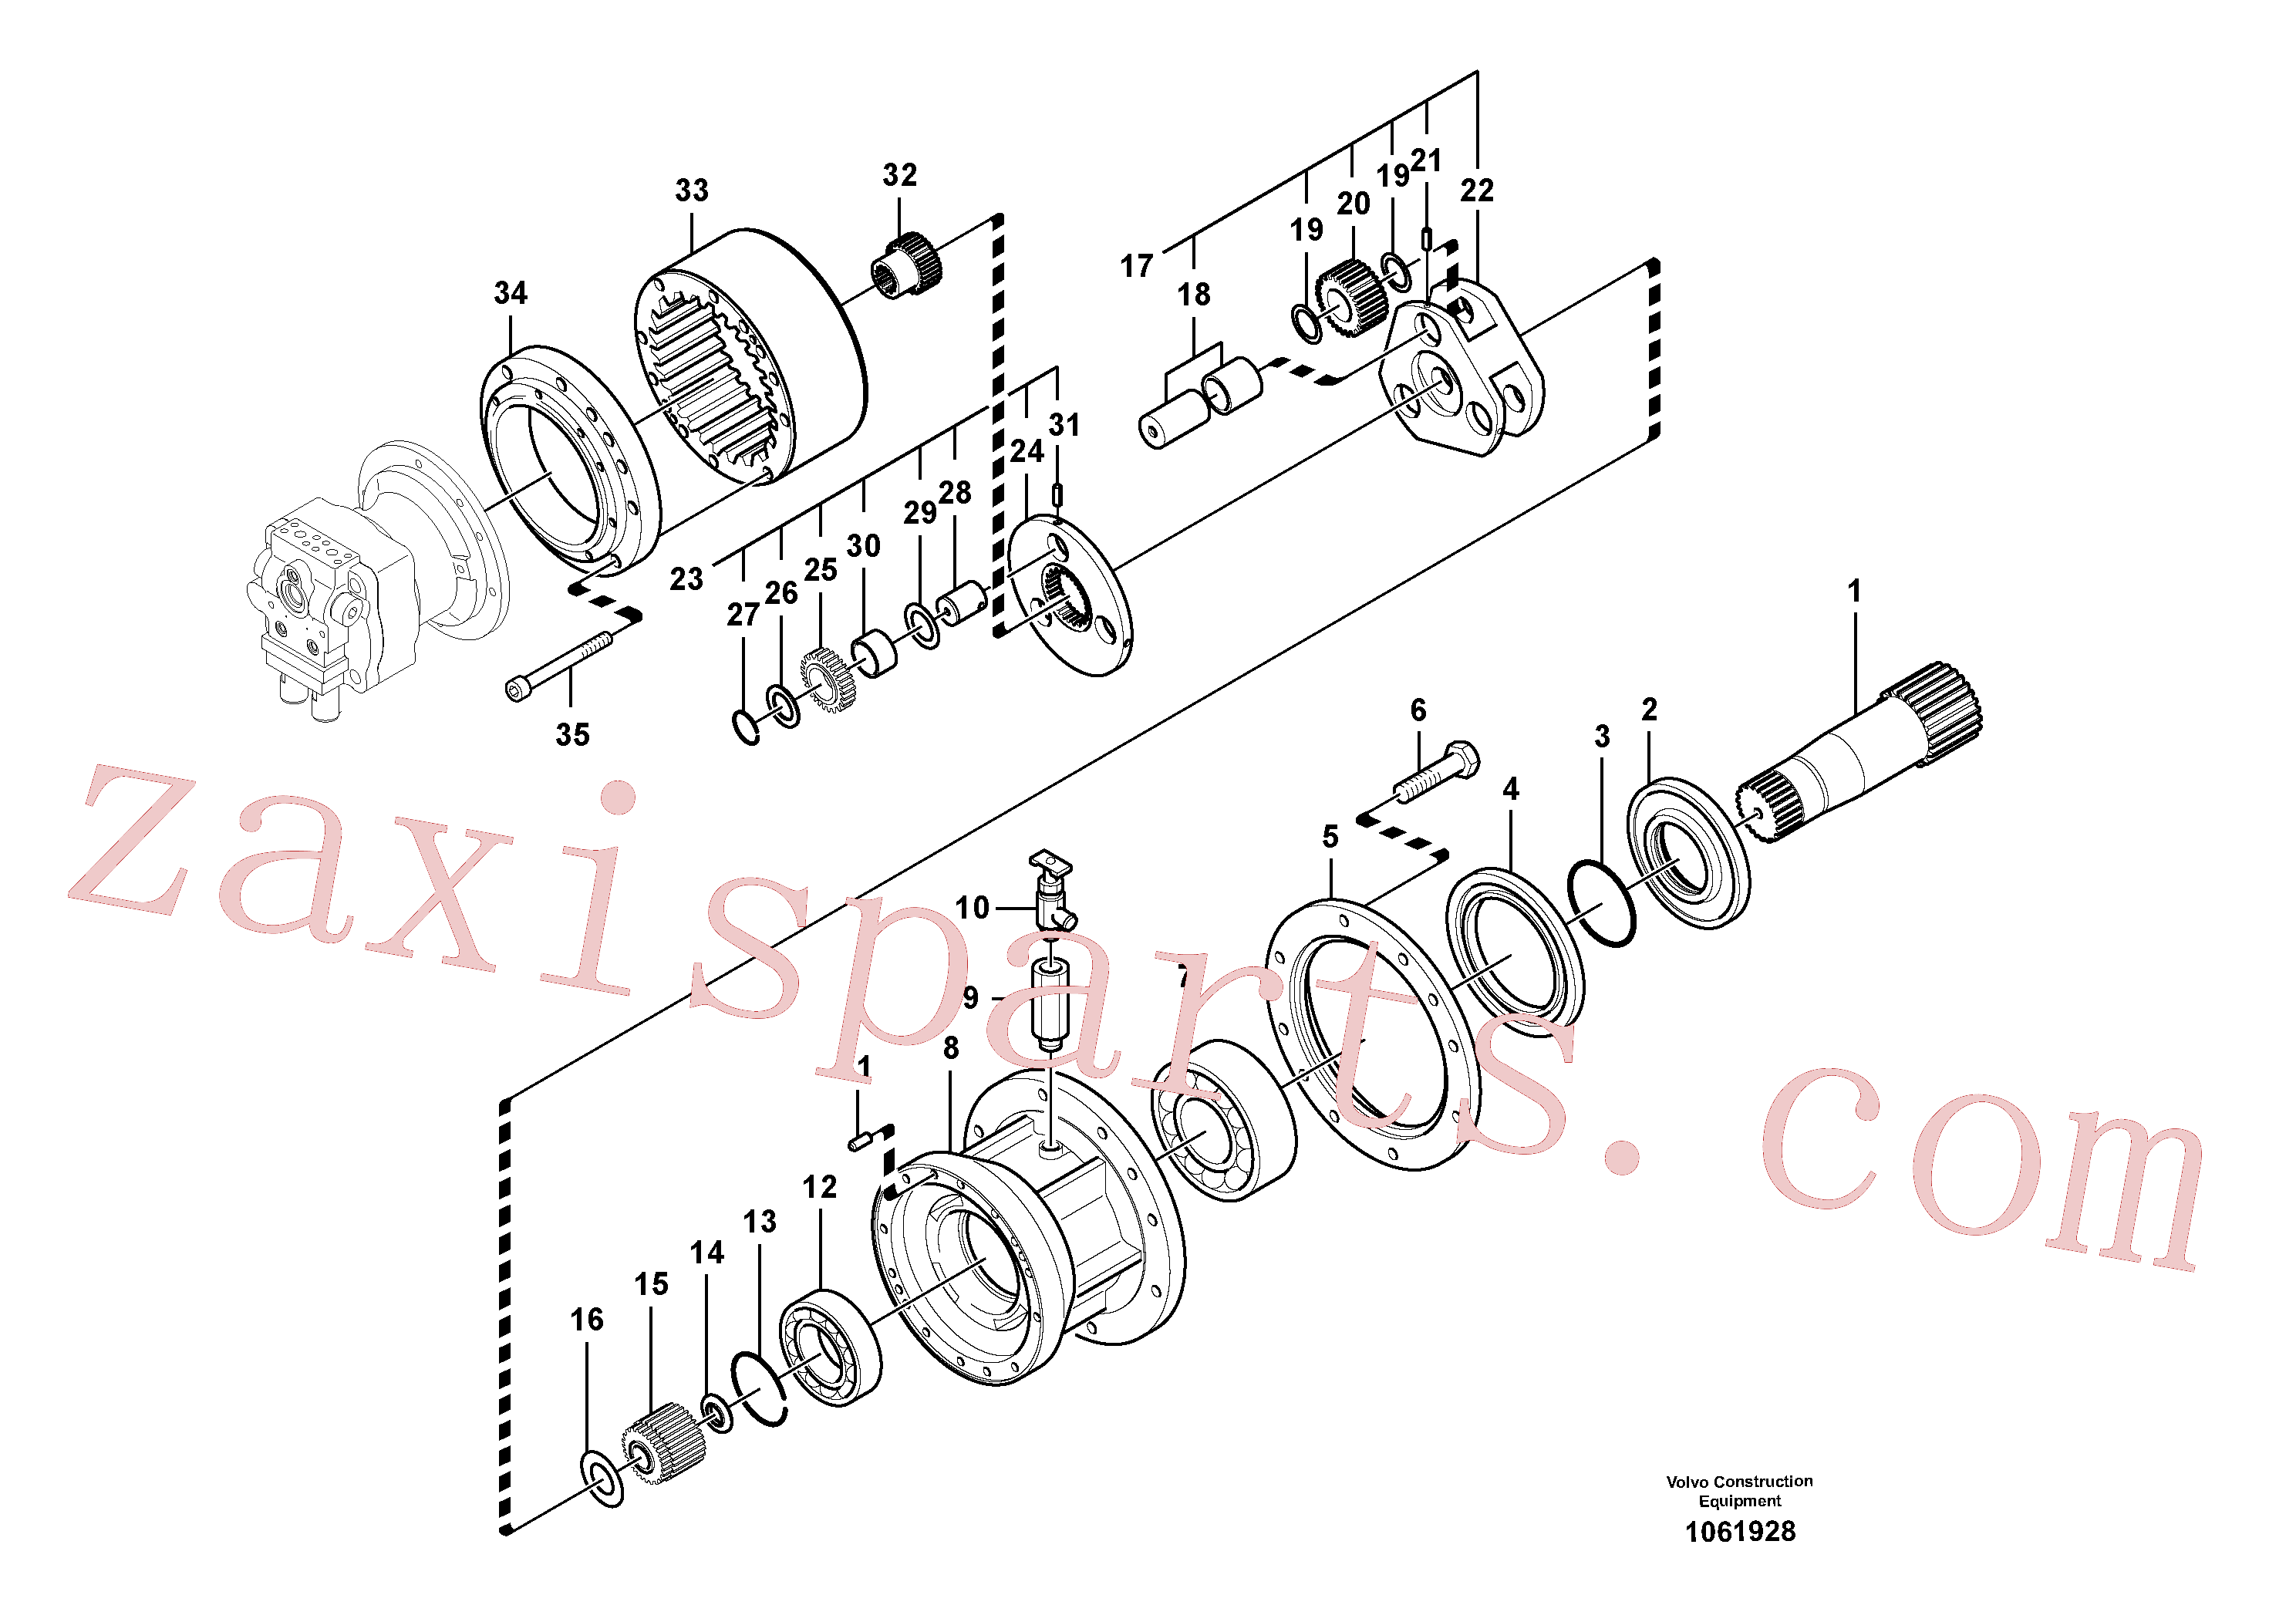 SA7118-30460 for Volvo Swing gearbox(1061928 assembly)